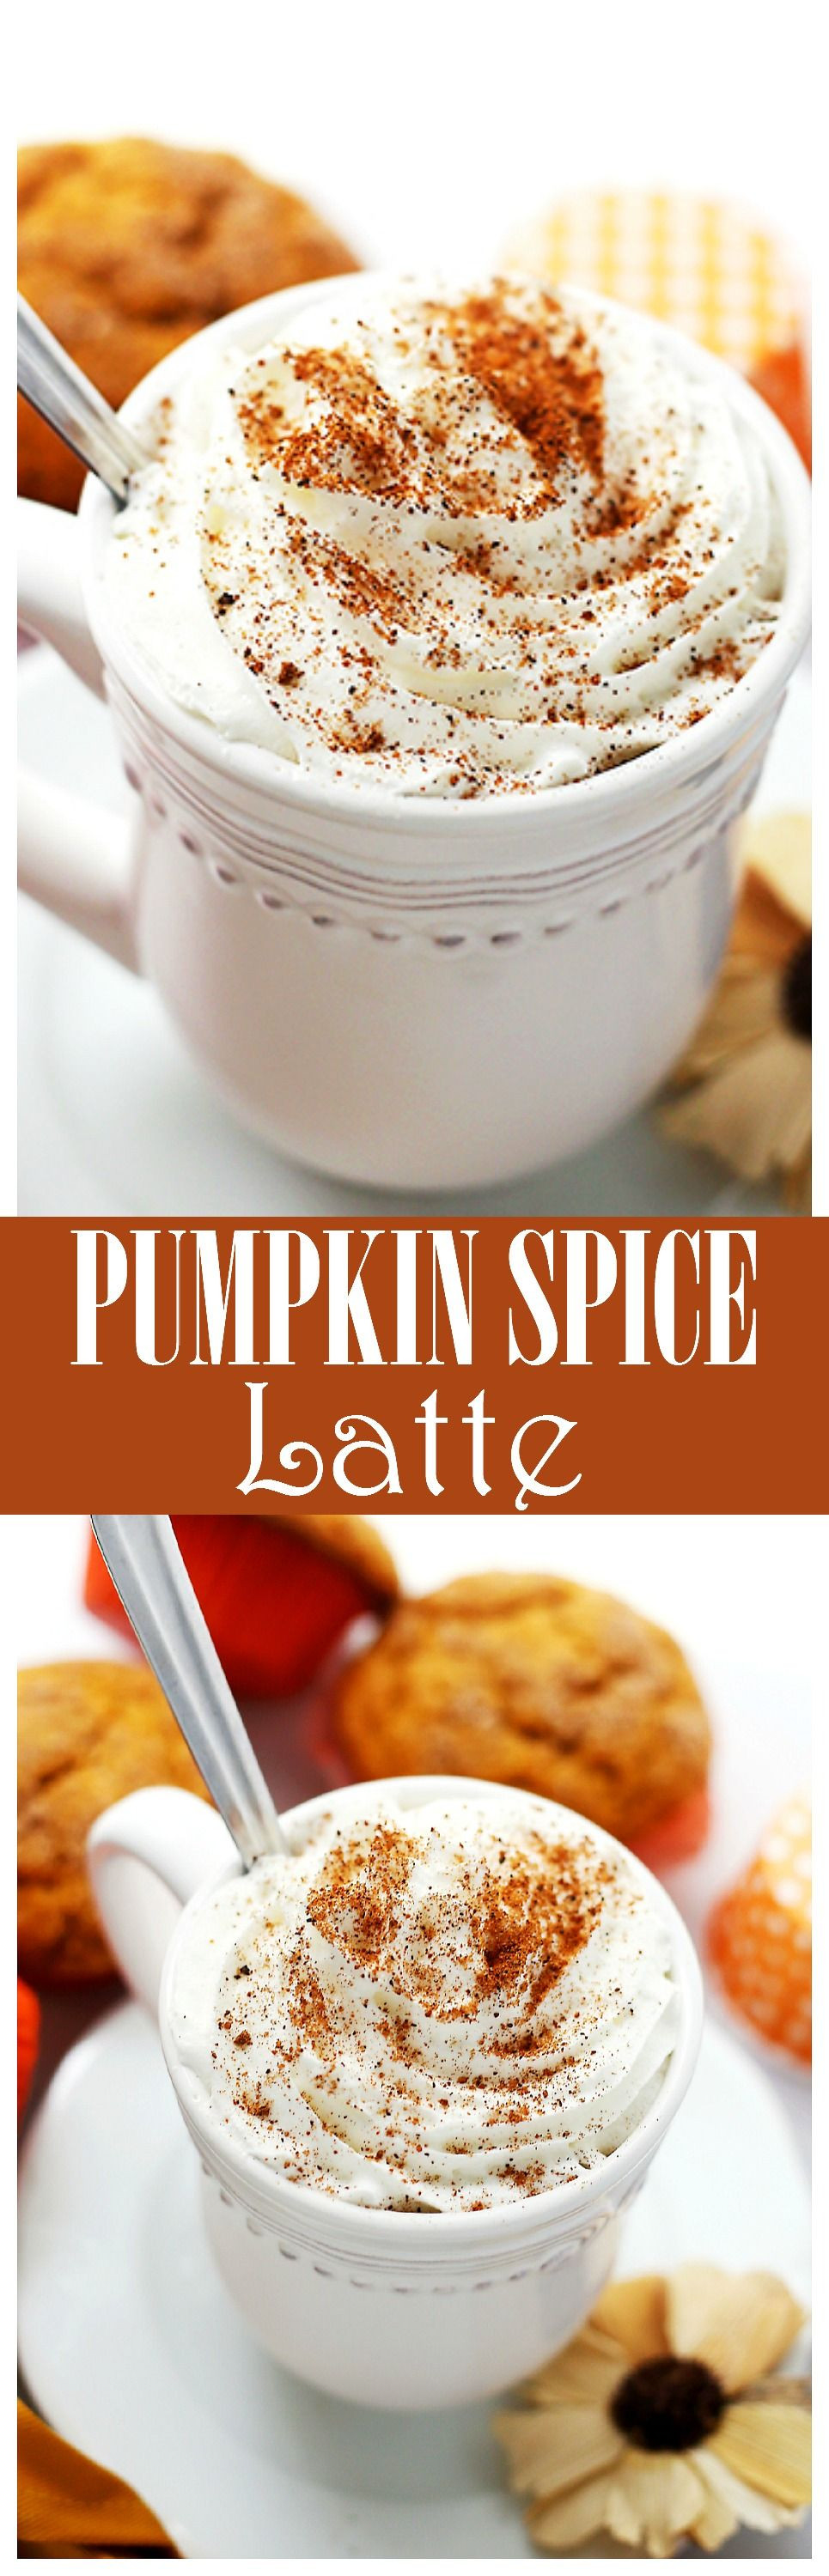 Starbucks Vegan Pastries  Pumpkin Spice Latte Make your own Starbucks Pumpkin